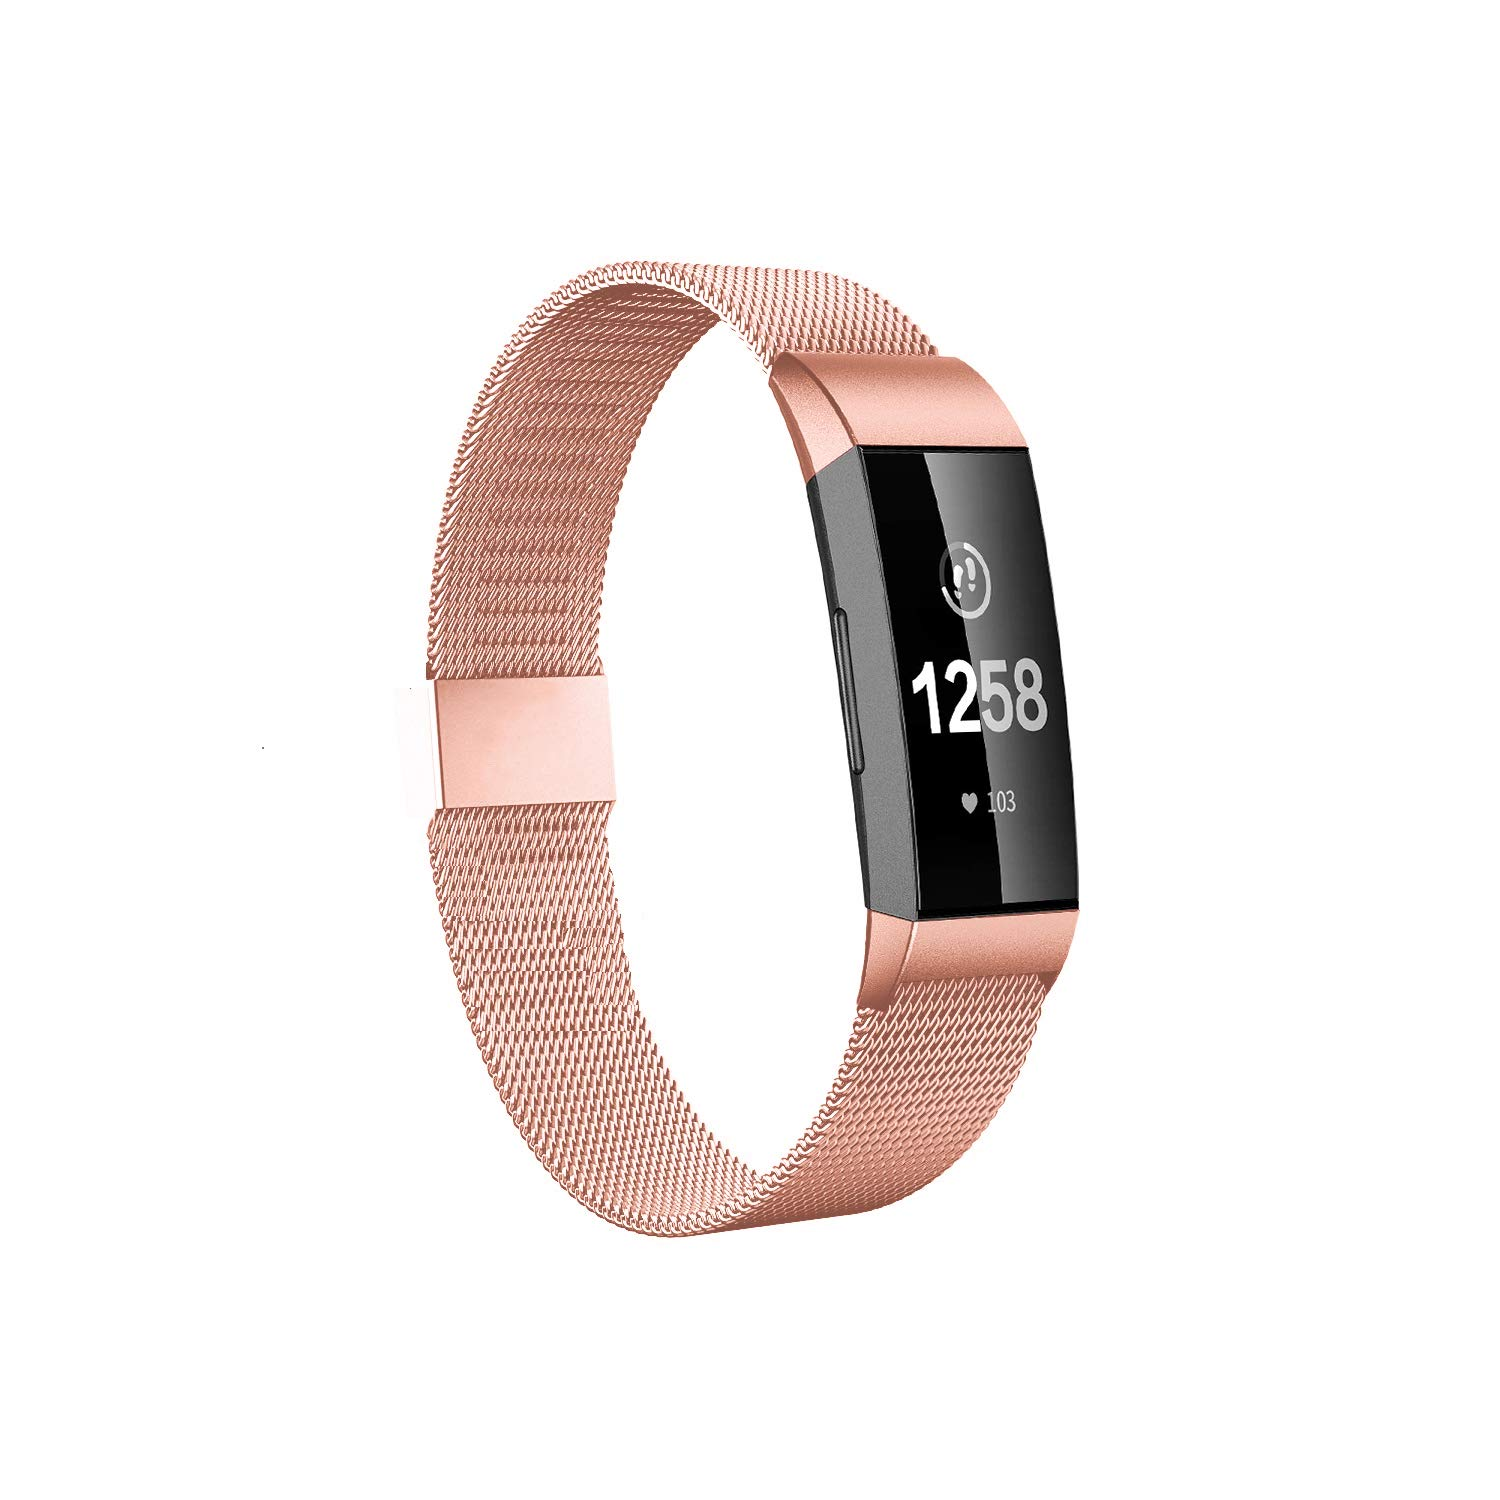 Fitlink Stainless Steel Bands Replacement for Charge 3 and Charge 3 SE for Women Men,Multi Color Multi Size (Original Rose Gold, Large(6.1 ''- 9.9''))